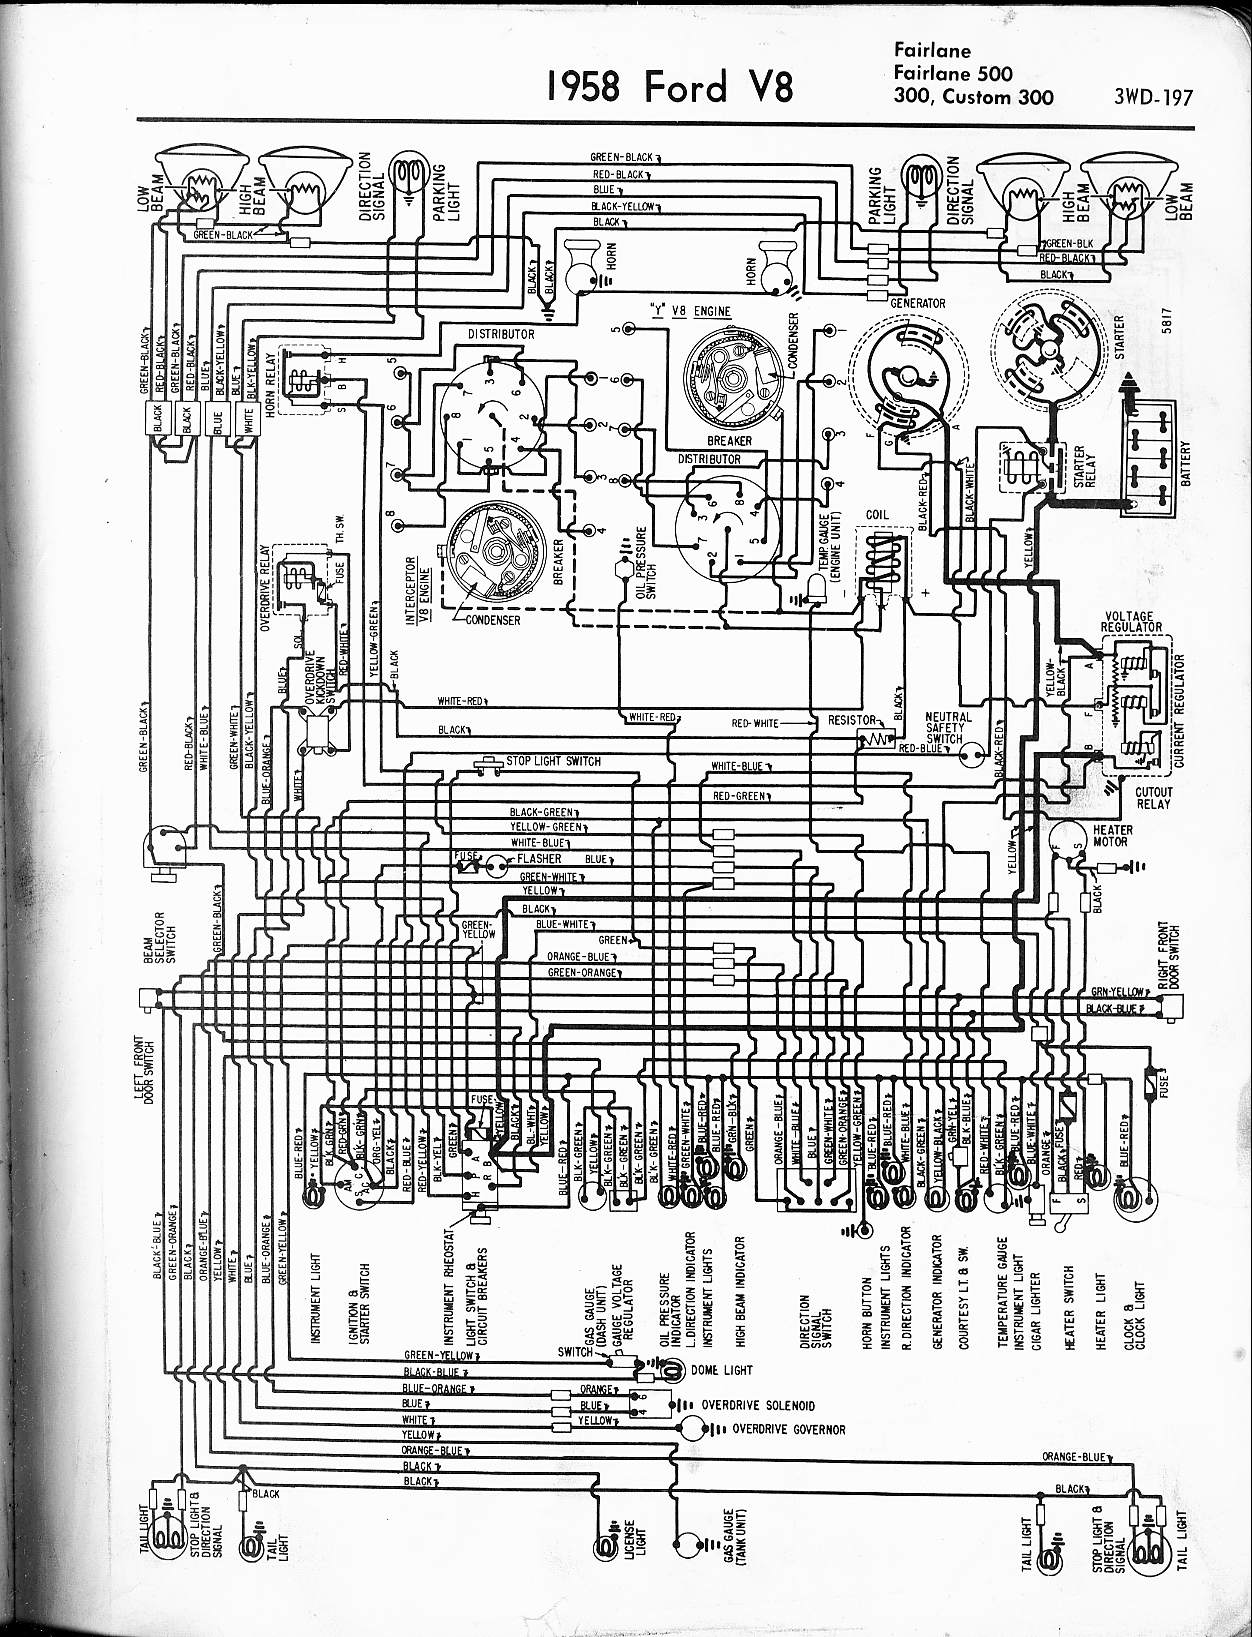 65 fairlane wiring diagram clean schematics wiring diagrams u2022 rh rslroyalty com